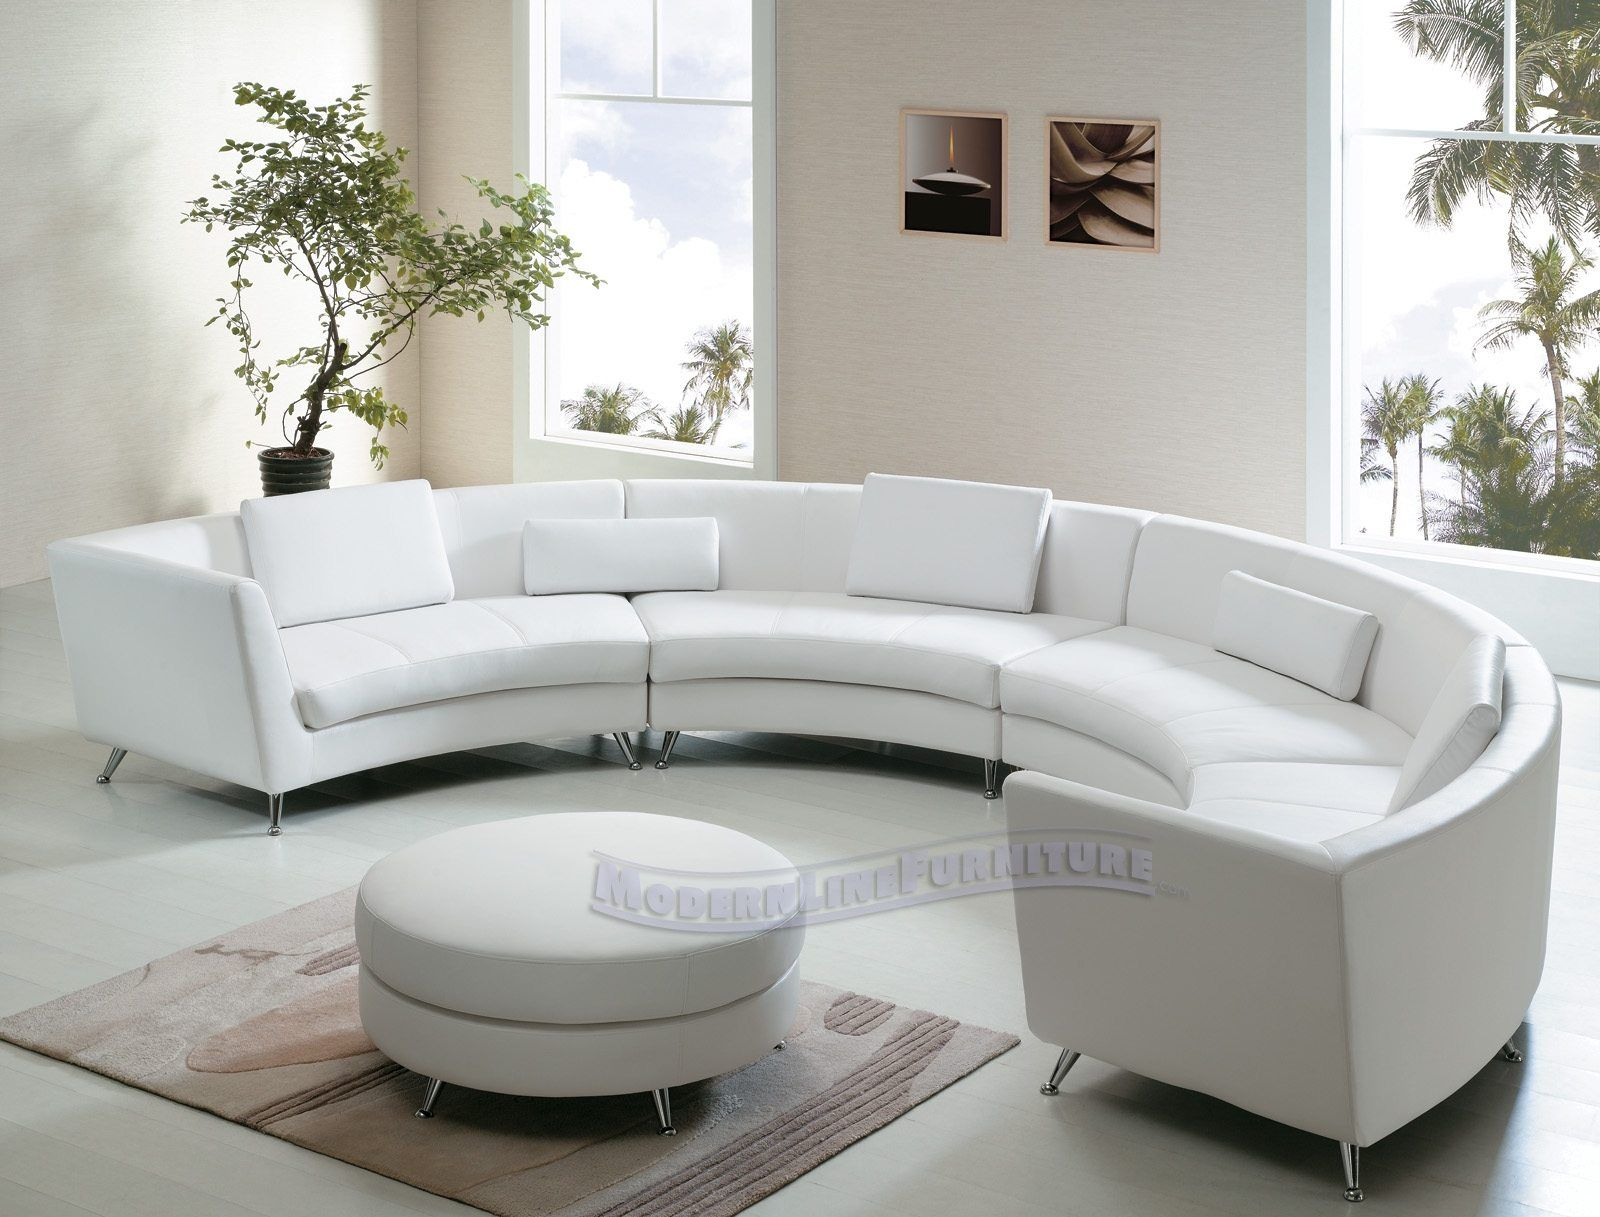 Comfortable Curved Sectional for Elegant Living Room Design Leather